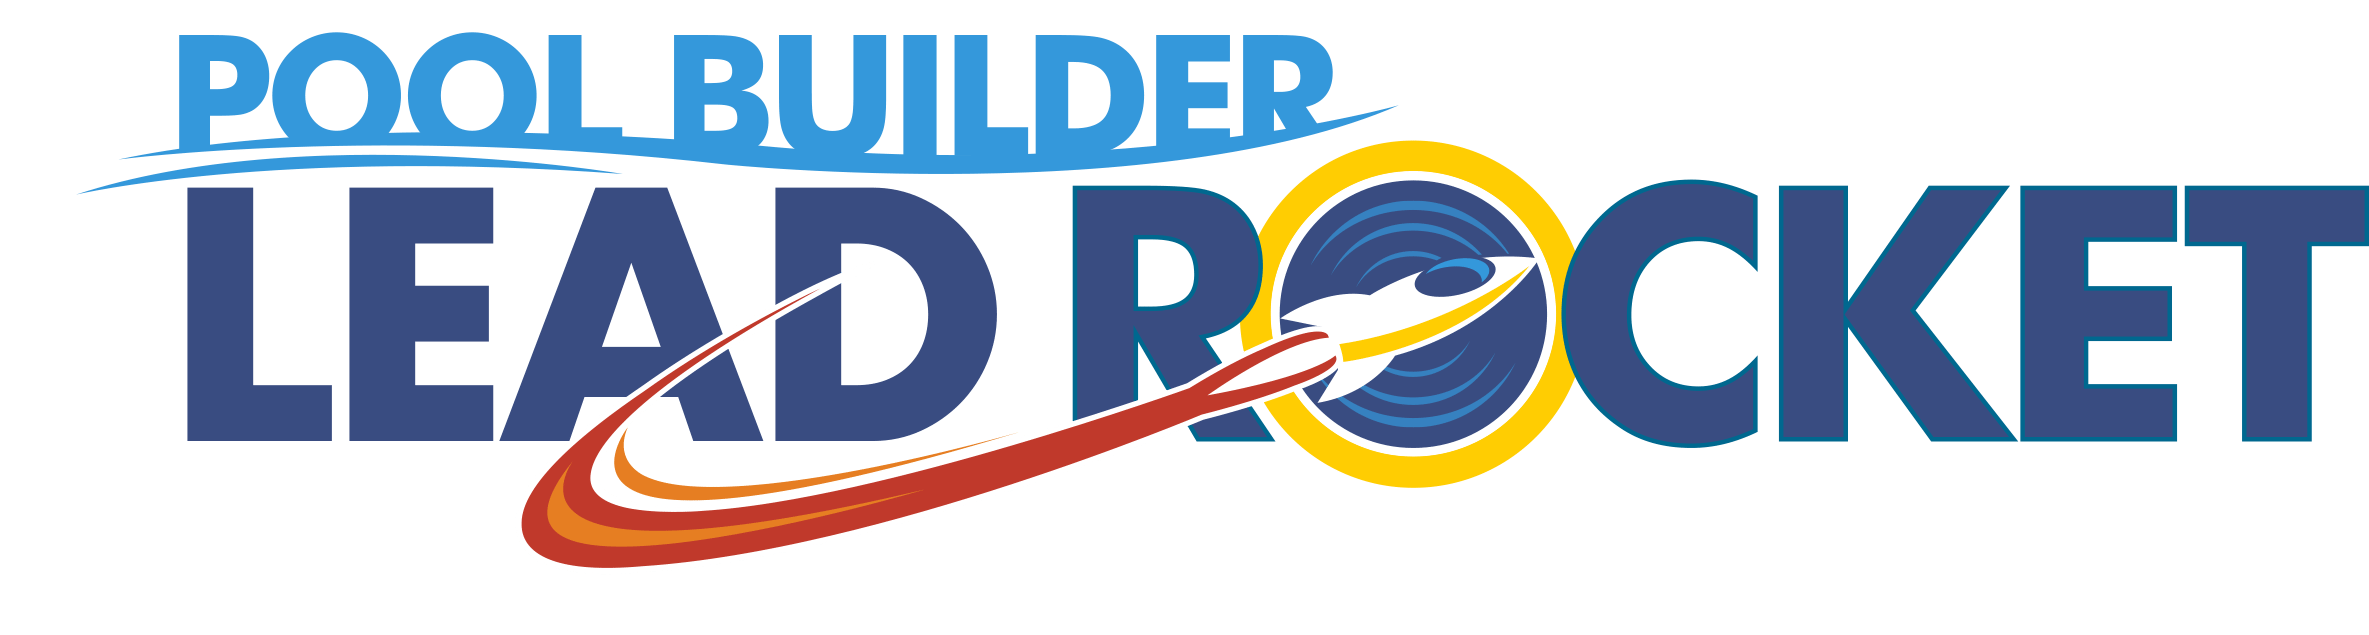 Pool Builder Marketing | Internet Marketing Solutions for the Pool Builder Industry